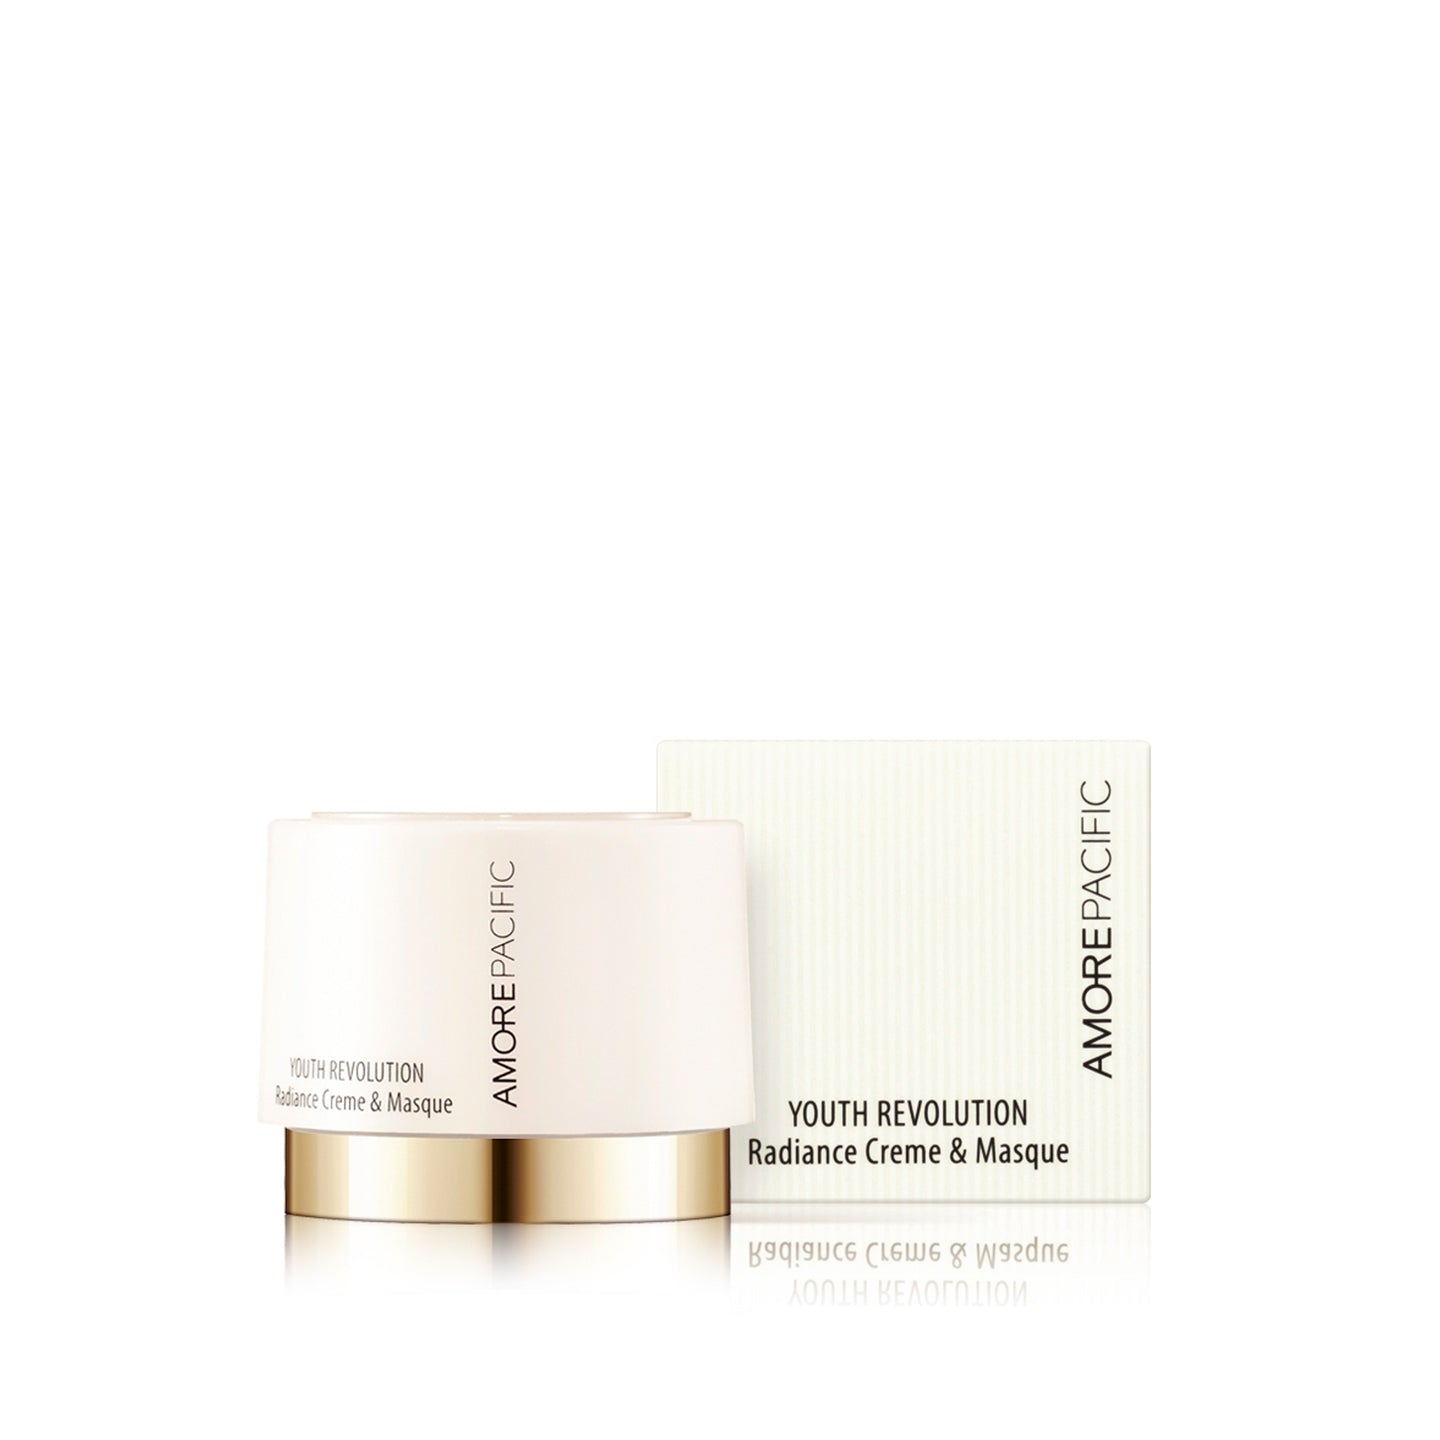 Youth Revolution Radiance Creme & Masque (8ml)